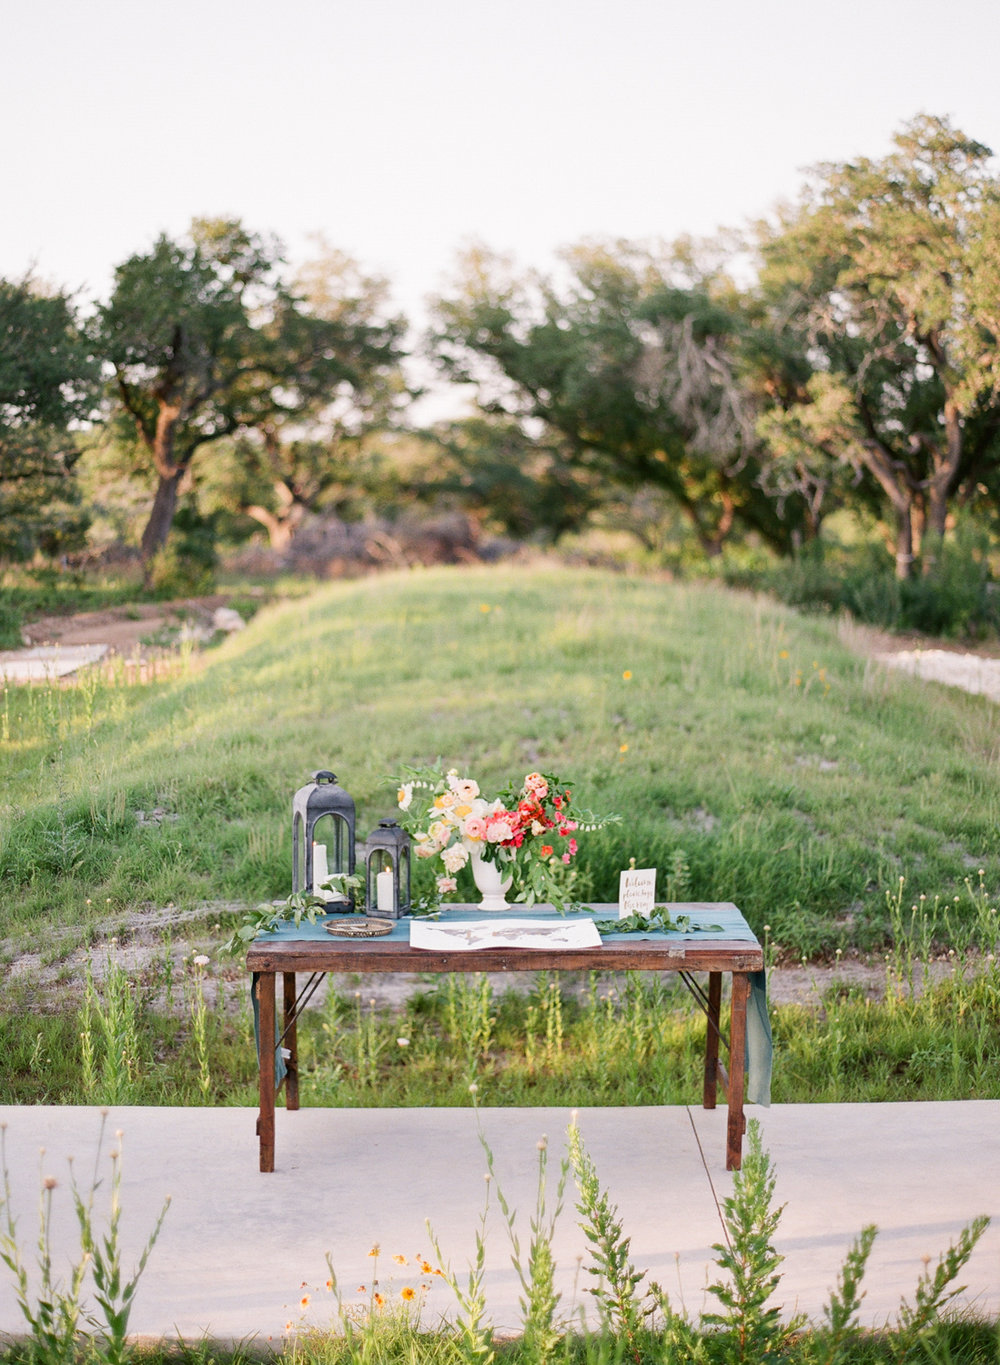 PROSPECT_HOUSE_WEDDING_AUSTIN_TX_BY_MATTHEW_MOORE_PHOTOGRAPHY_00584.jpg